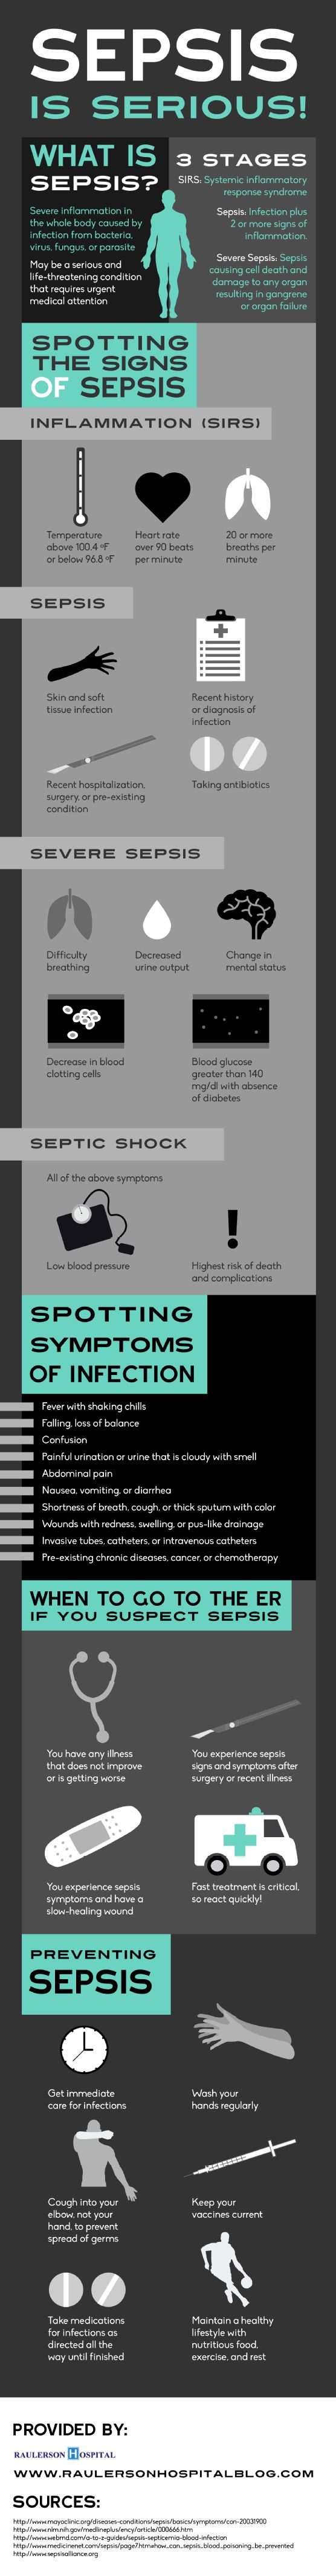 Scared of sepsis? Prevent it by washing your hands regularly, keeping your vaccines currents, and maintaining an overall healthy lifestyle! Click over to this Okeechobee health care infographic to get more advice about preventing sepsis and protecting your health.